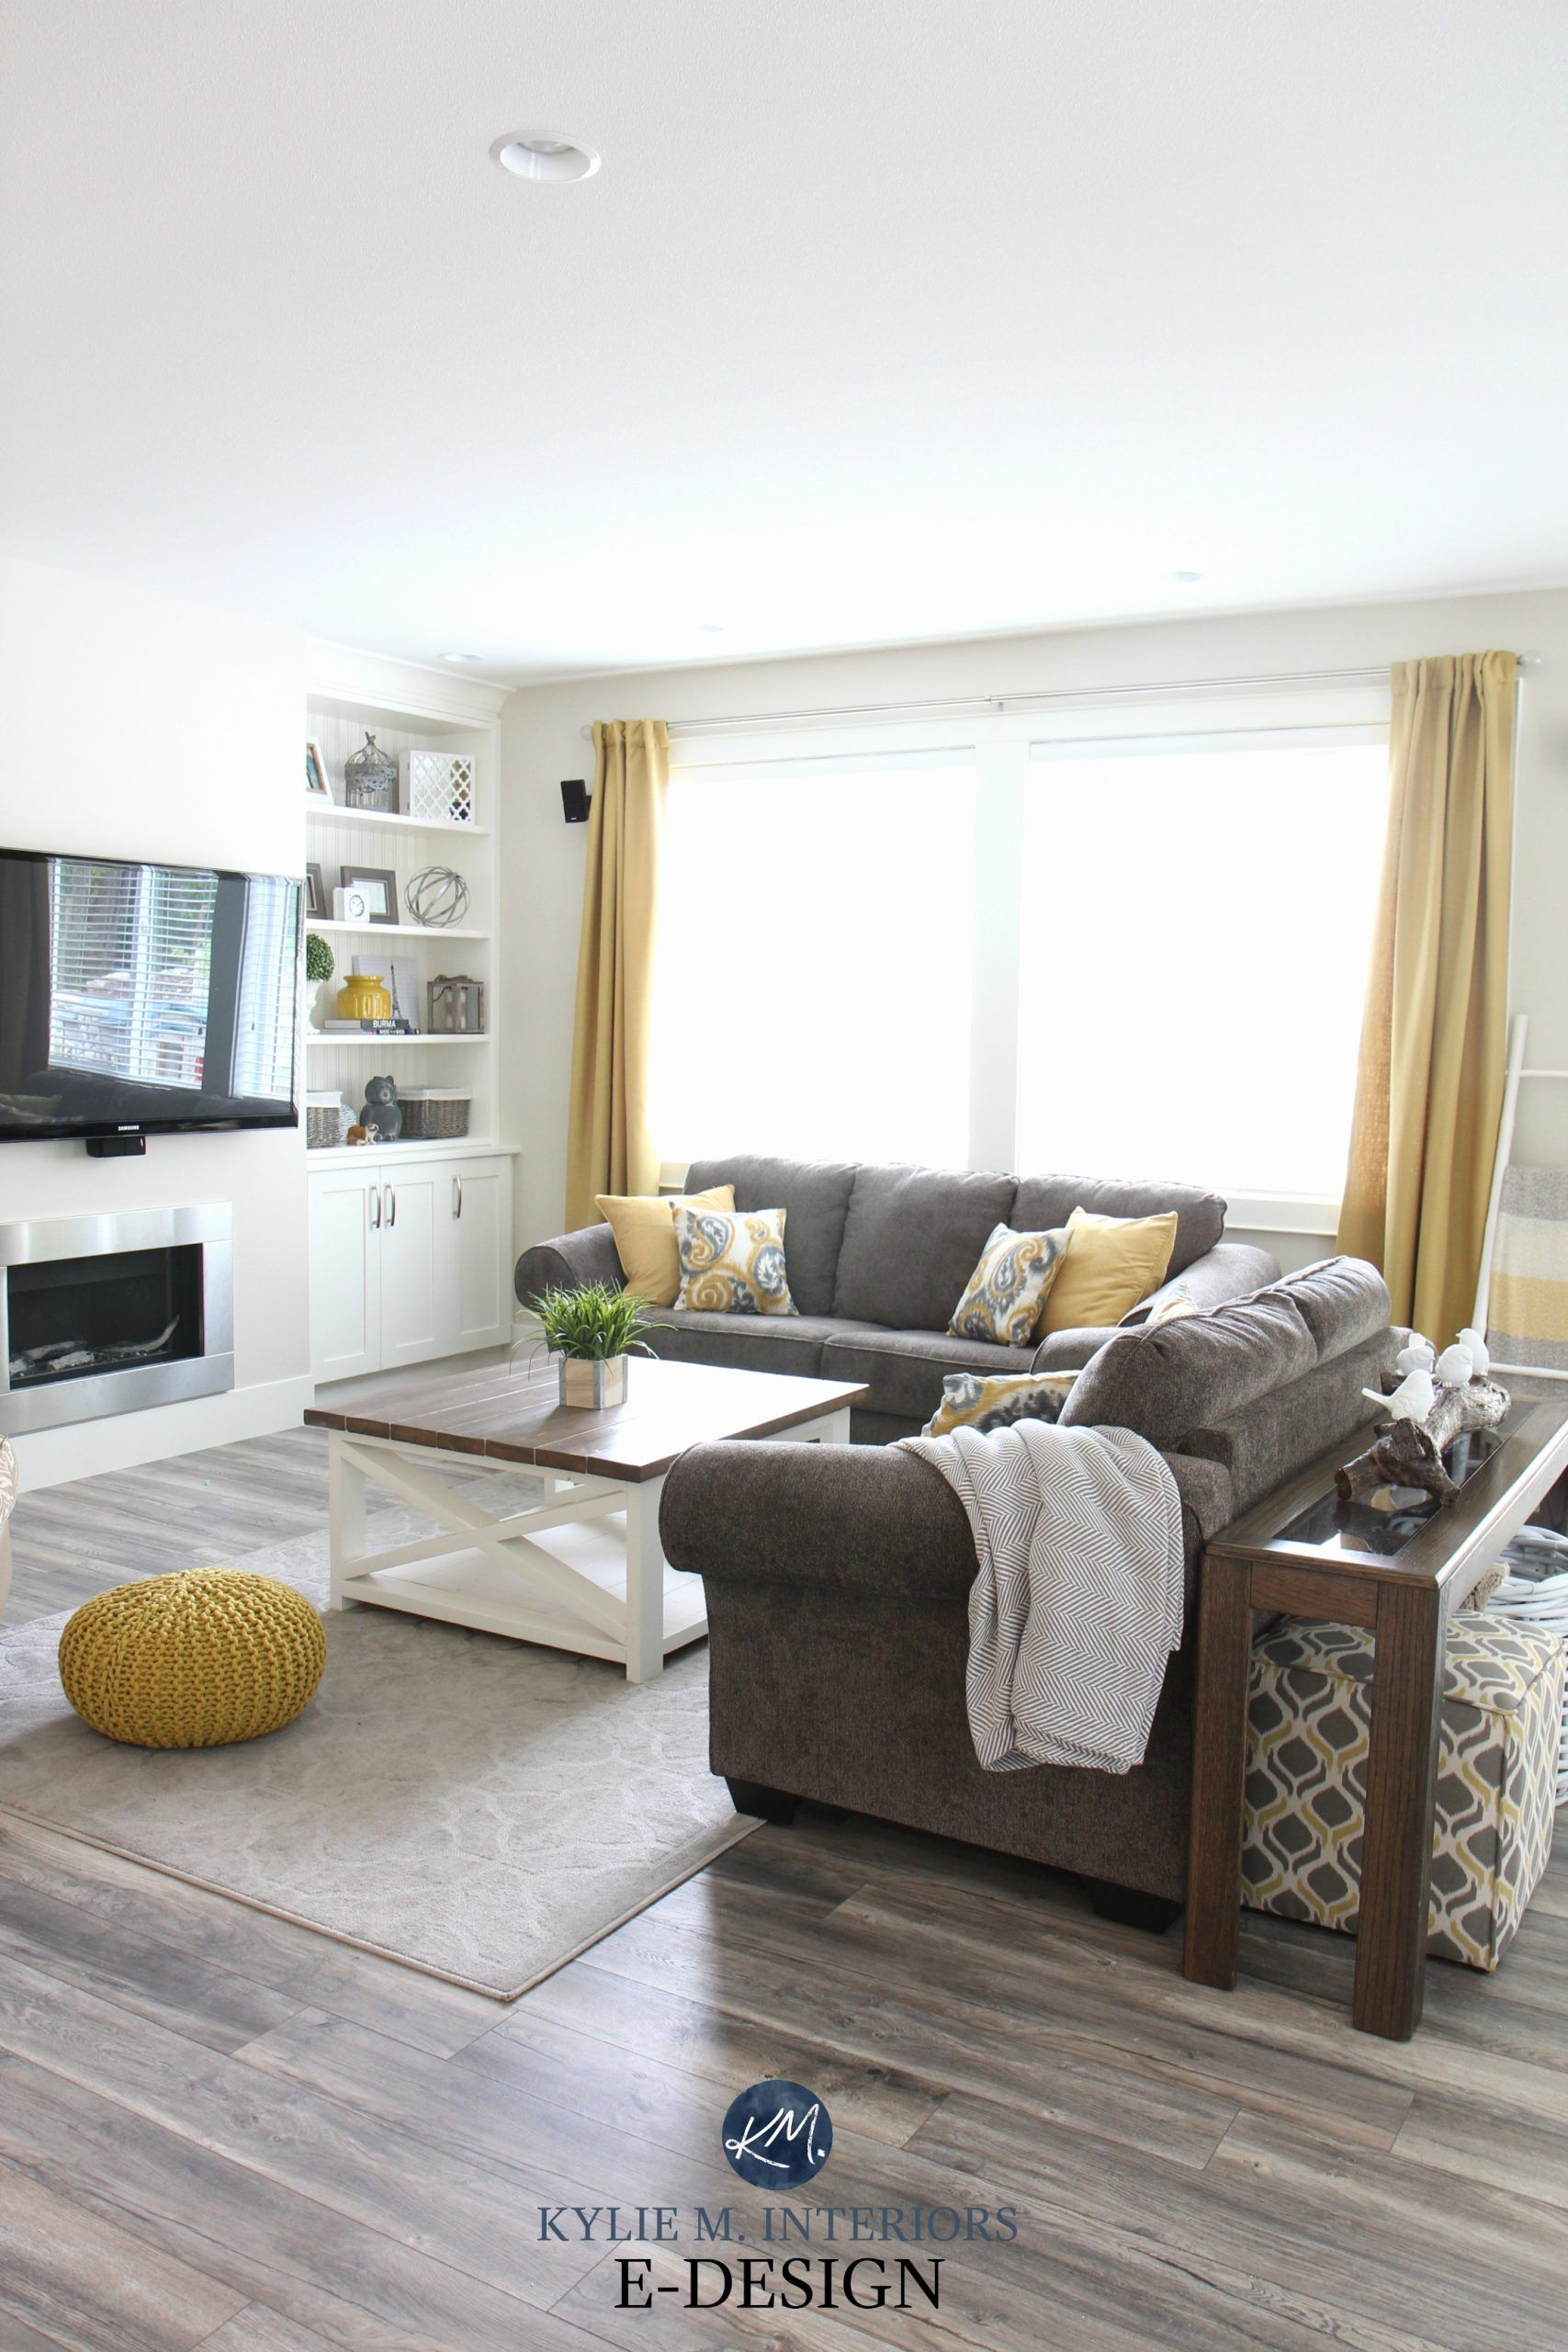 Staging Small Living Room Best Of Home Staging Tips And Ideas 4 Rules To Follow In 2020 Small Living Room Decorating Small Spaces Living Room Decor #small #living #room #staging